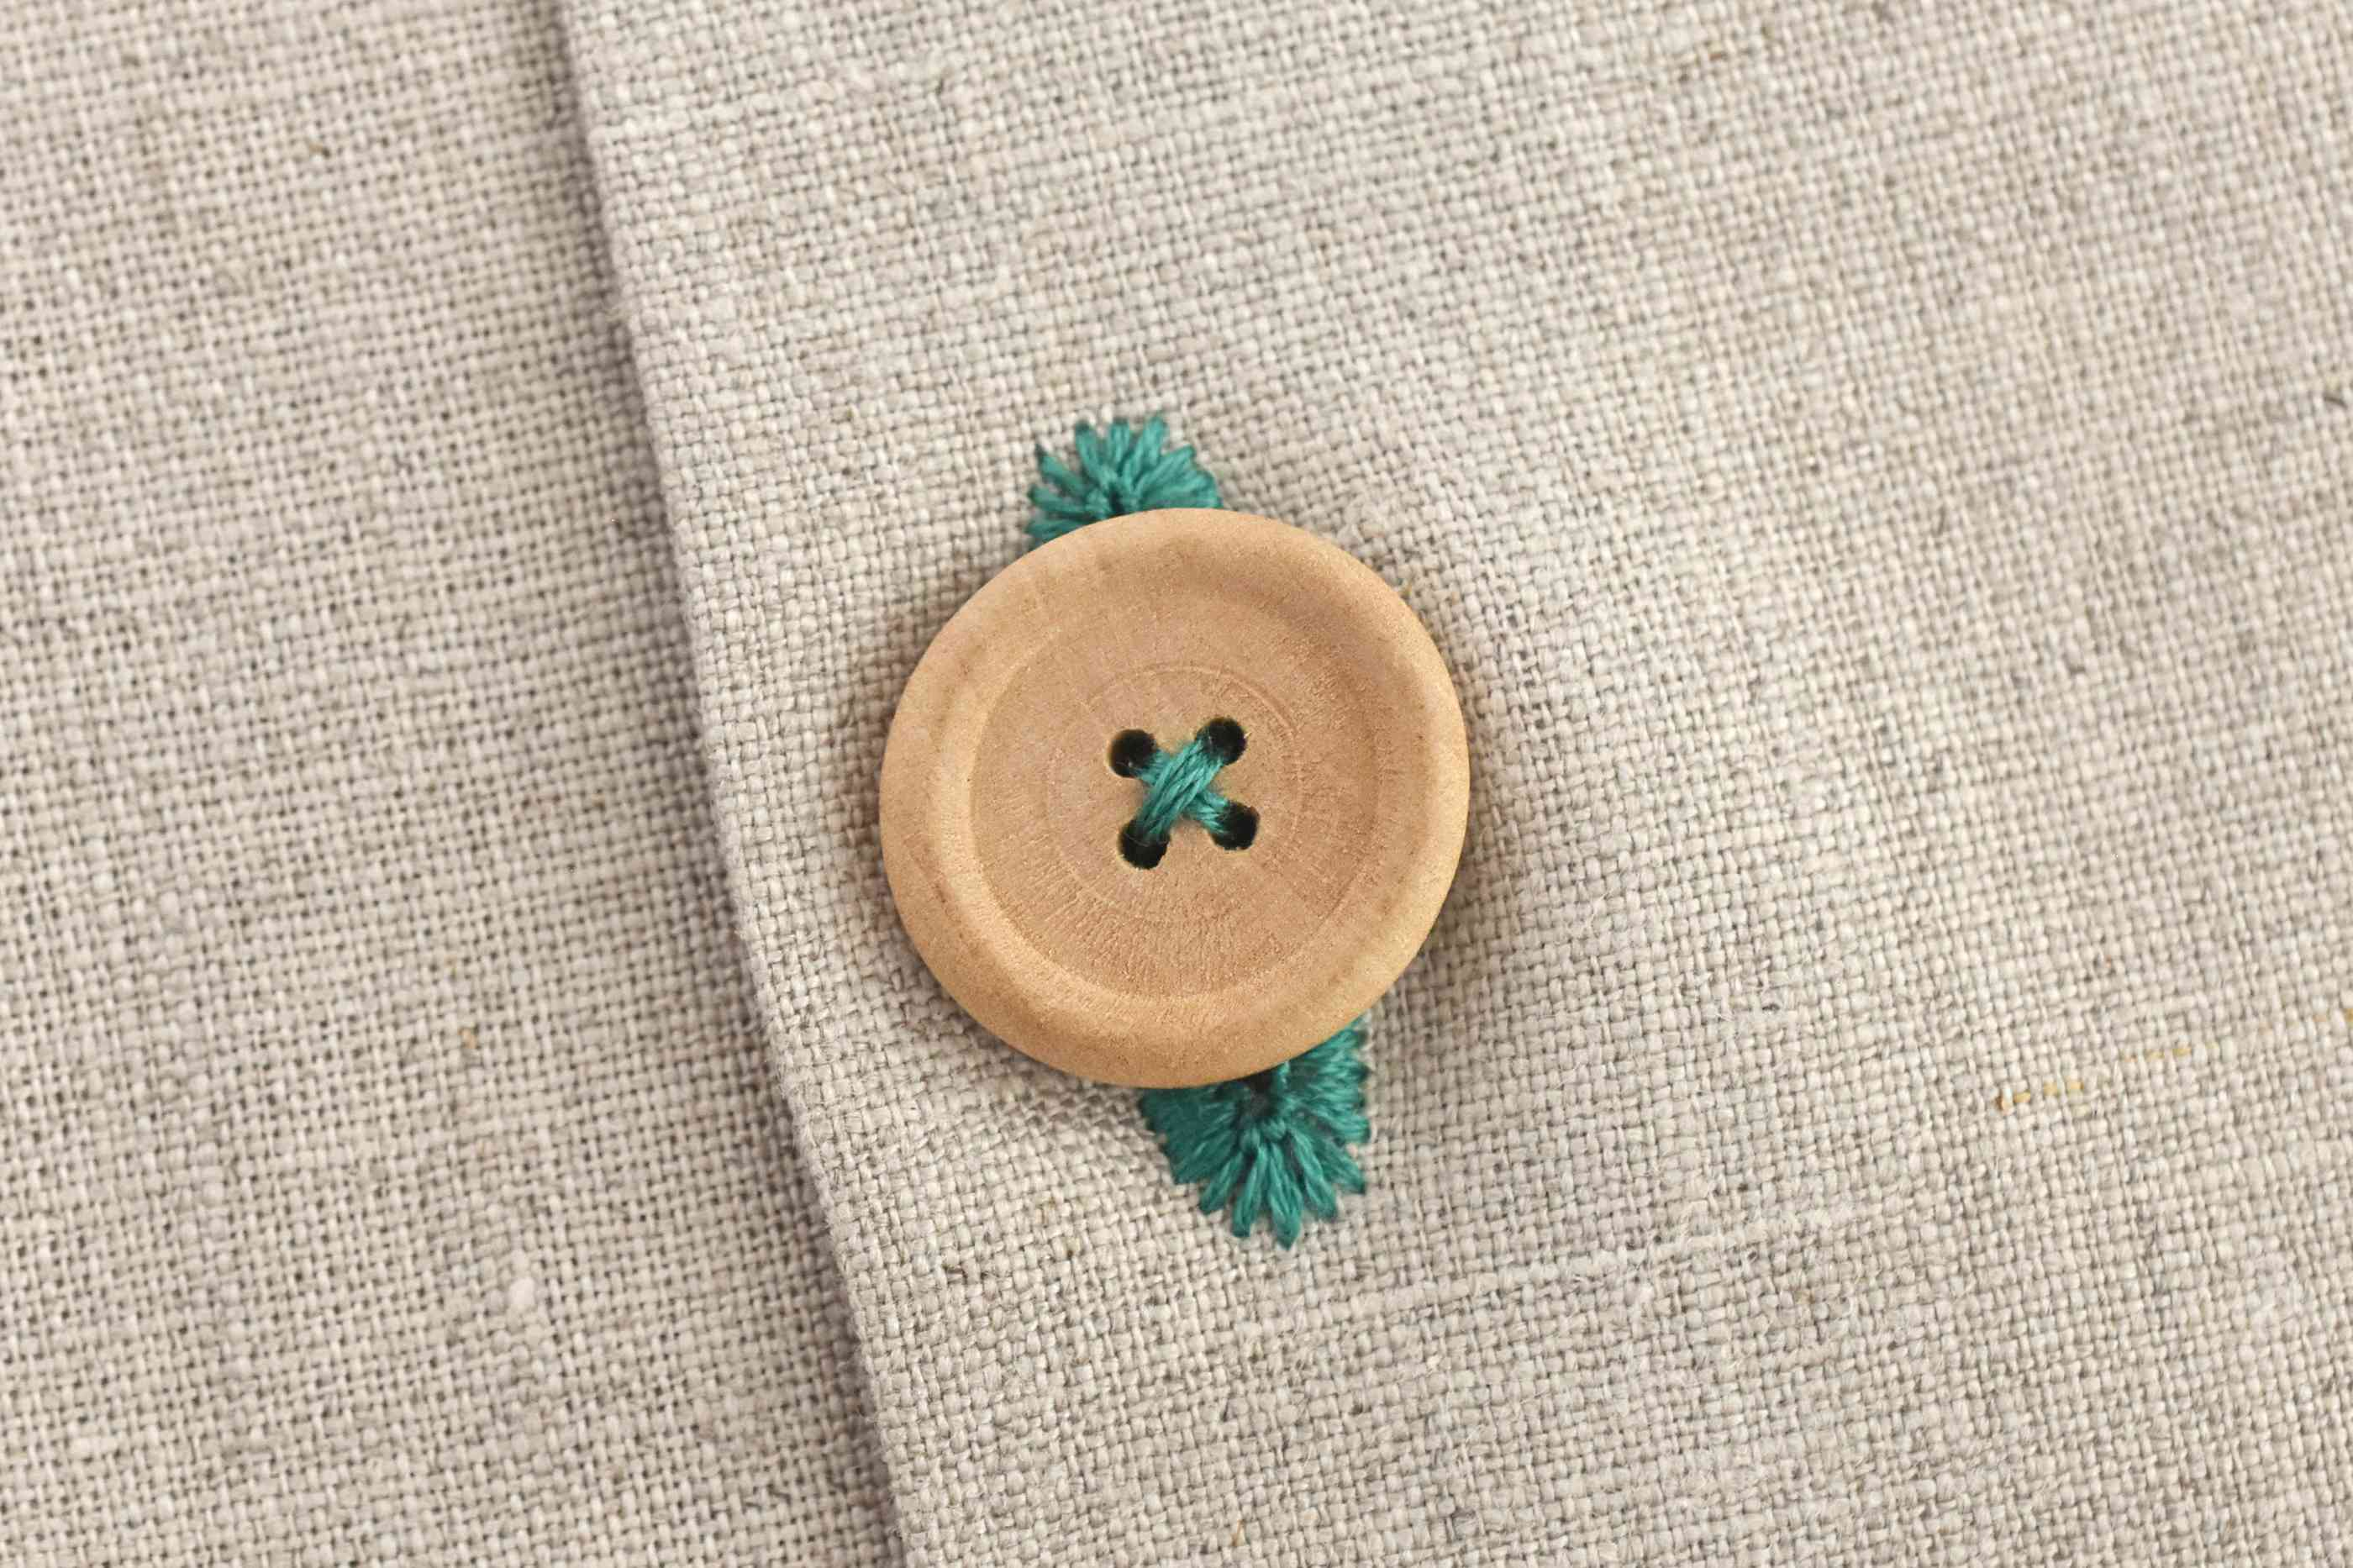 How to Do Buttonhole Stitch